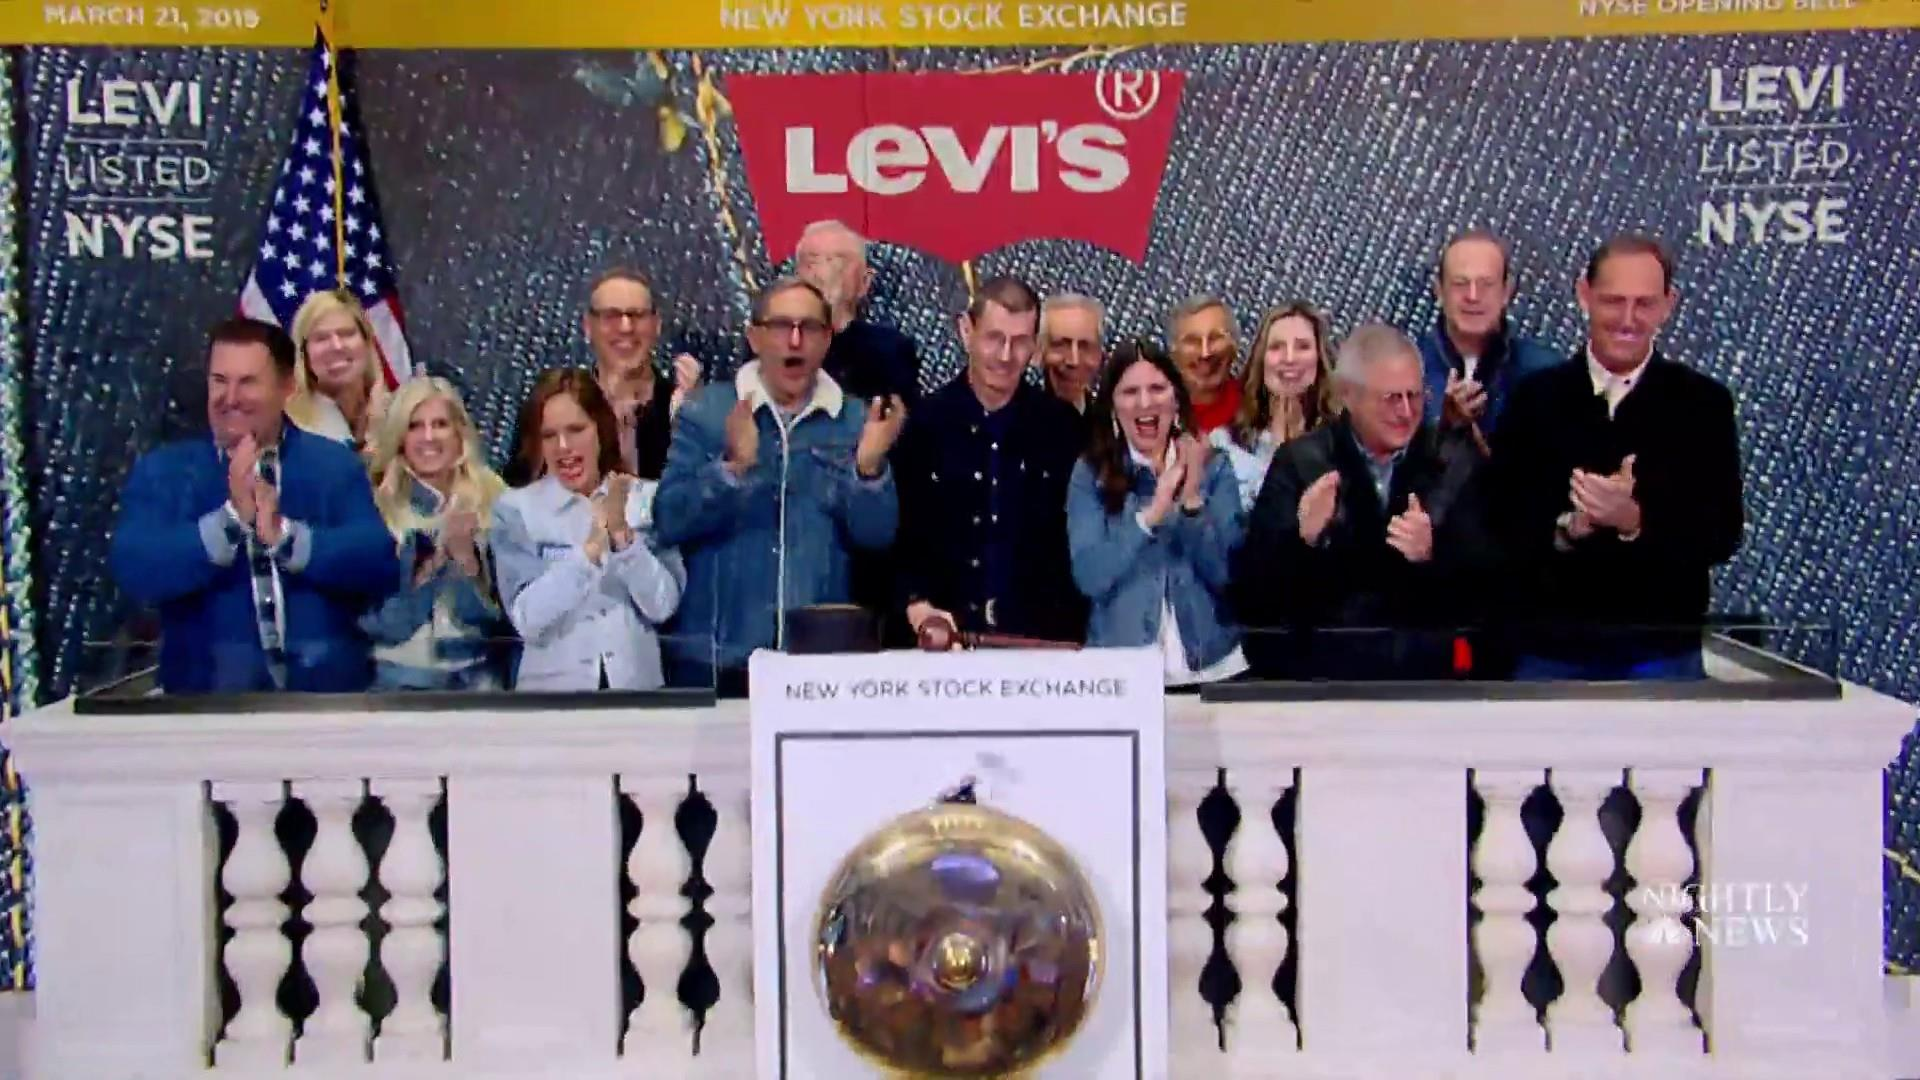 Levi's just went public, kicking off a new wave of red-hot IPOs